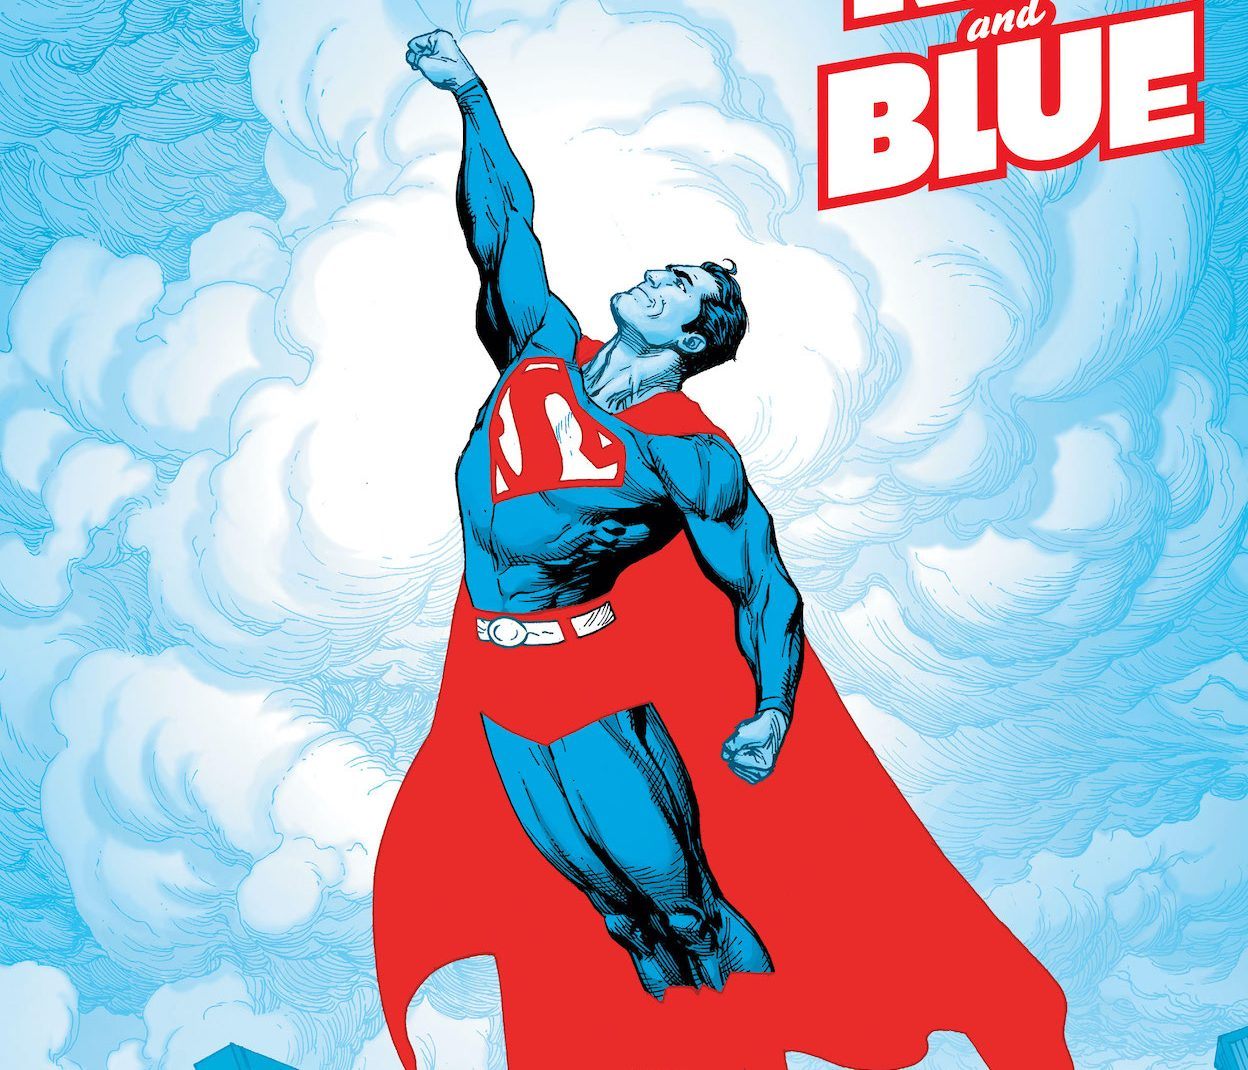 'Superman: Red and Blue' #1 offers a promising debut